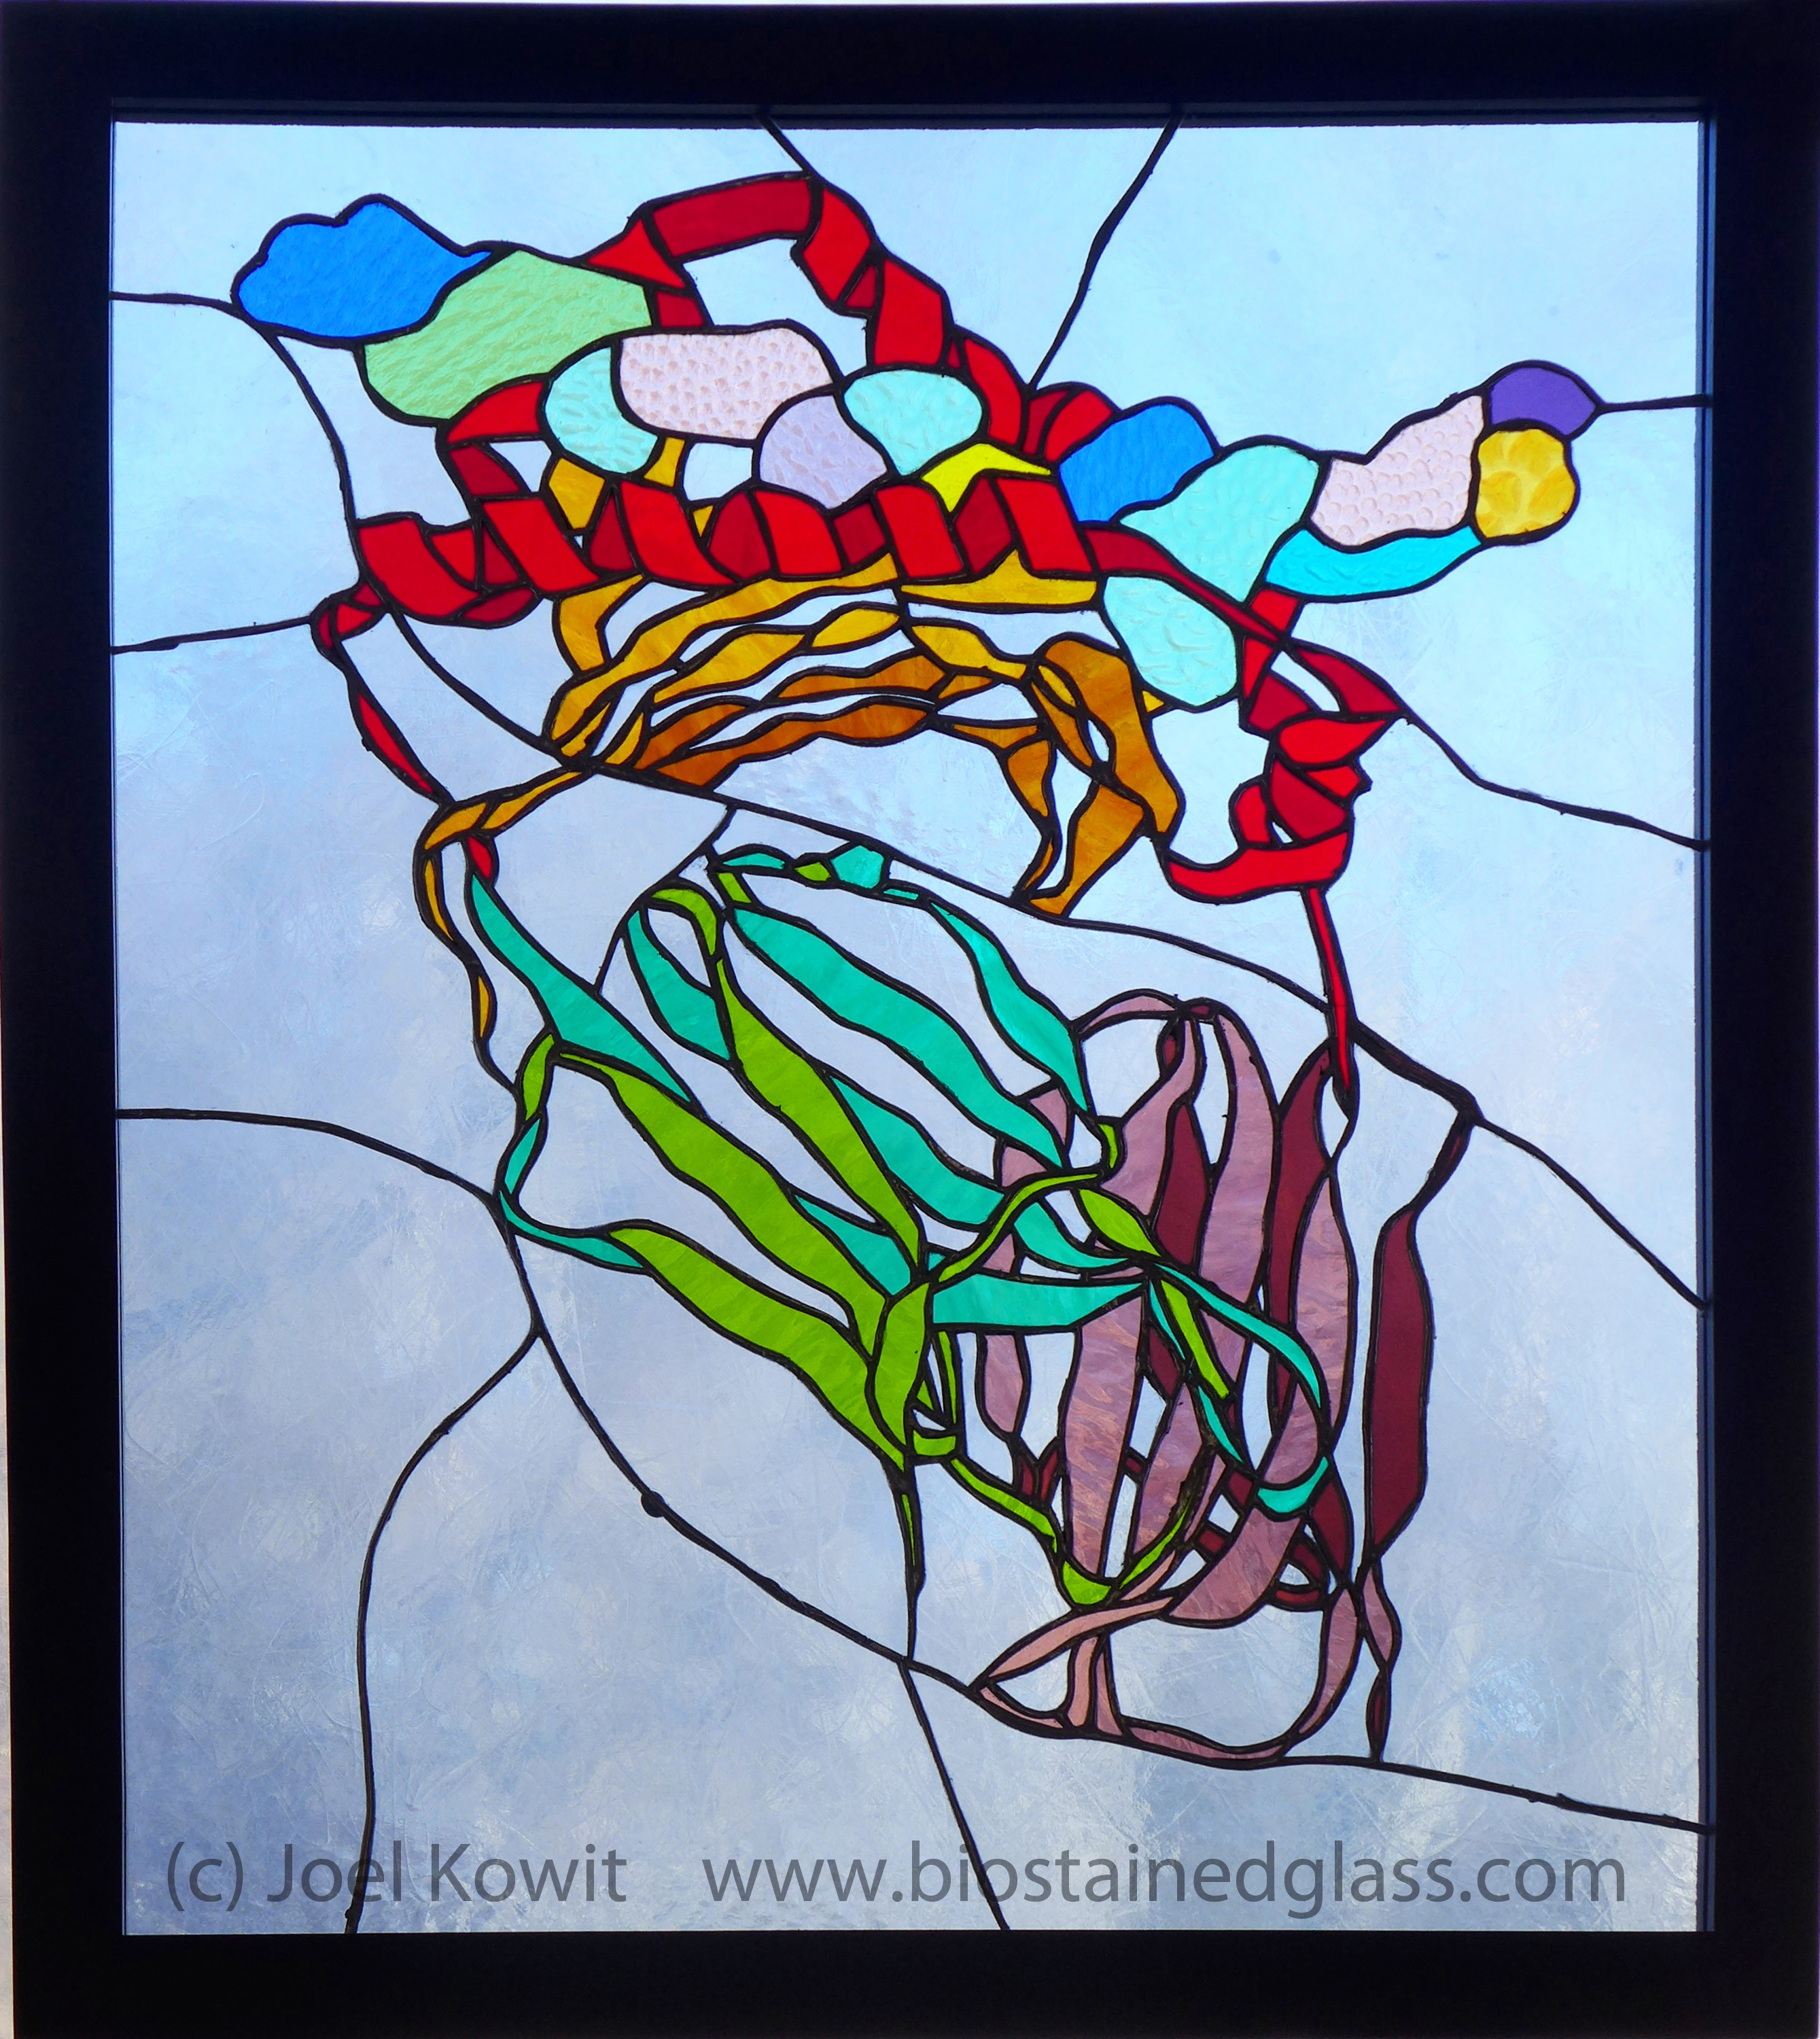 Exhibit, Artist Talk,  and Reception - The Cellular Universe Through Stained Glass: Joel Kowit